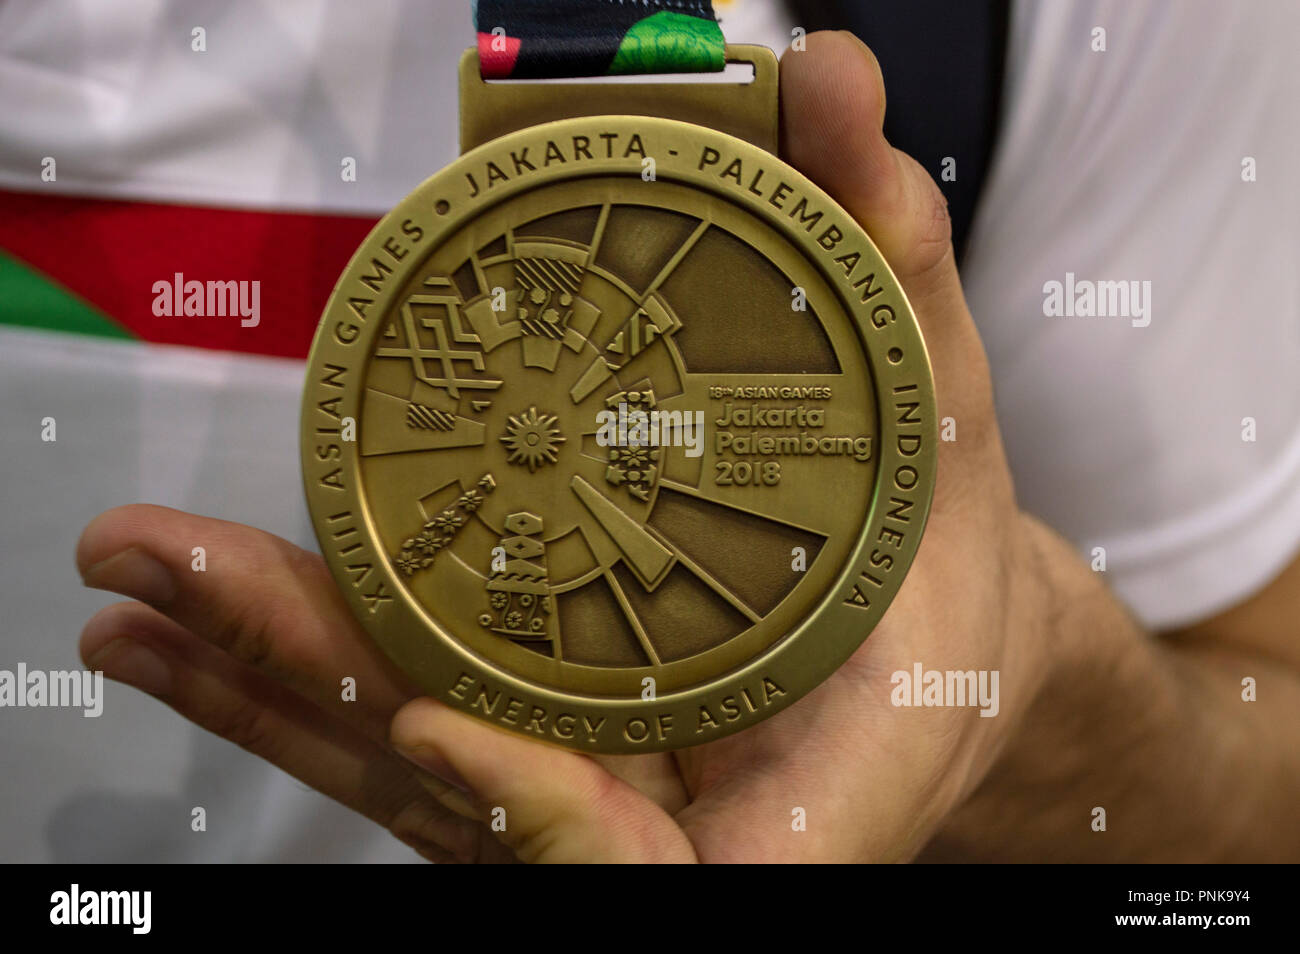 The bronze medal of an Iranian water polo player from the 2018 Asian Games - Stock Image